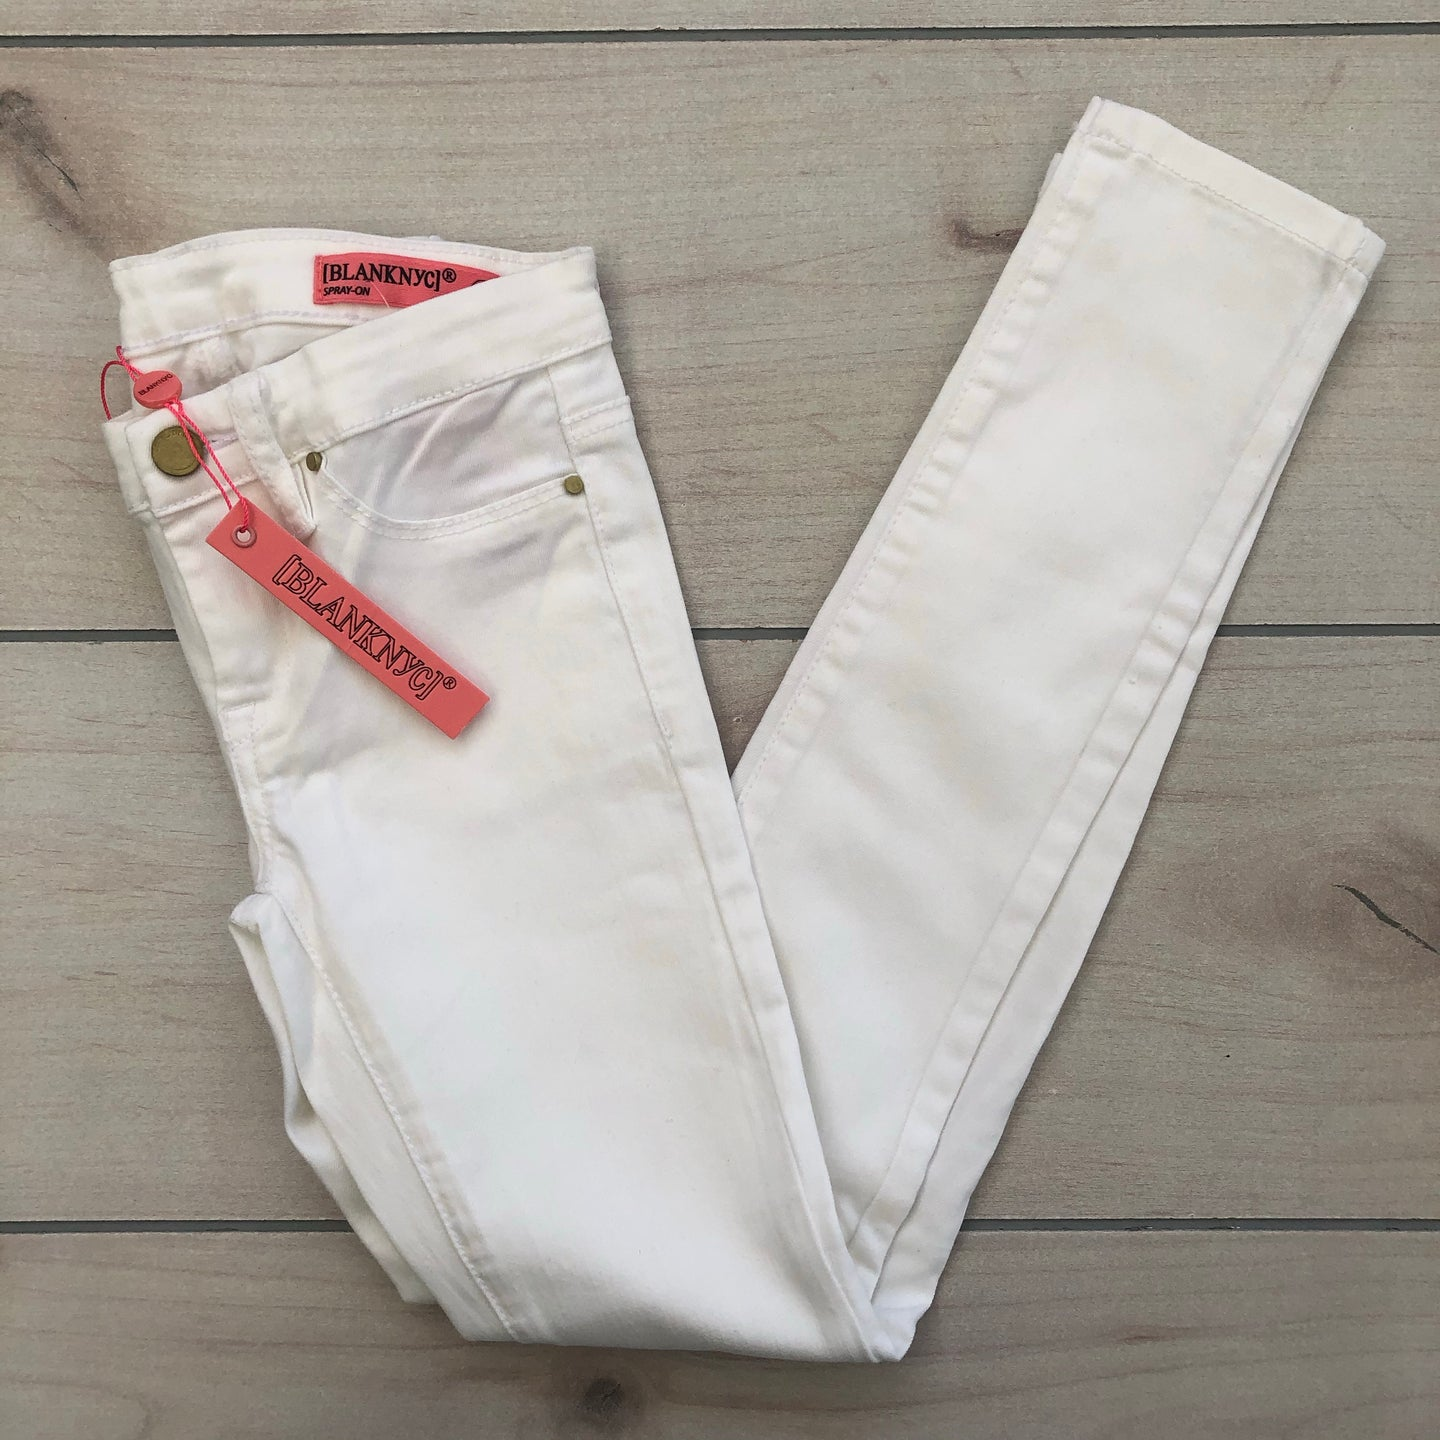 Blank NYC White Spray-On Jeans Size 10 NWT